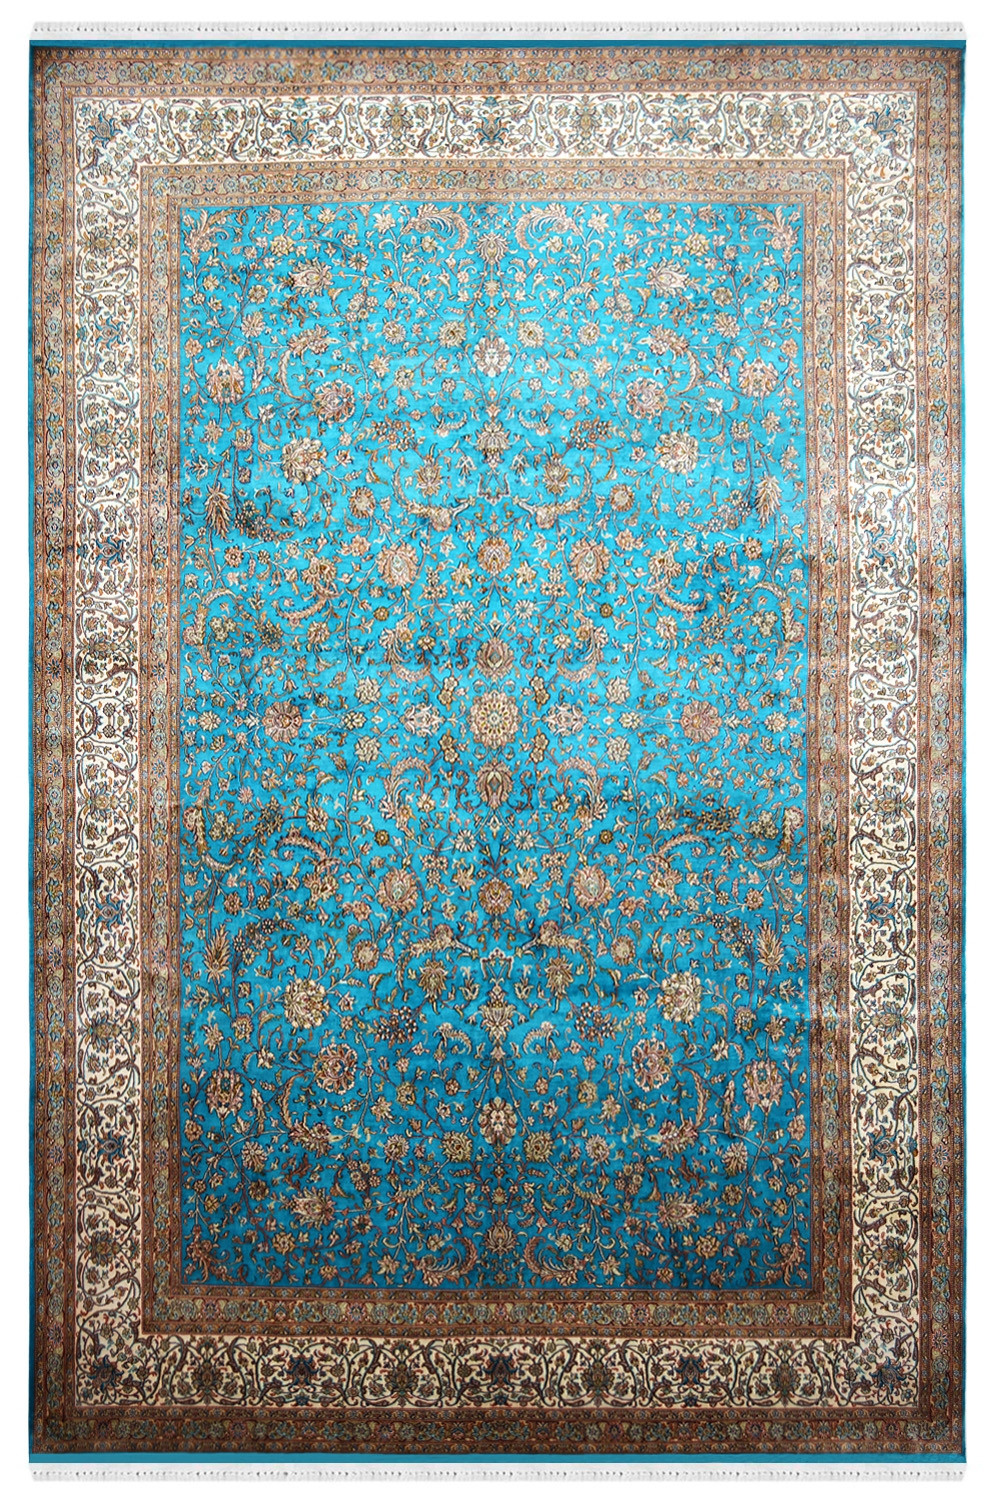 Shop Beautiful Turq Jewel Handknotted Silk Area Rug